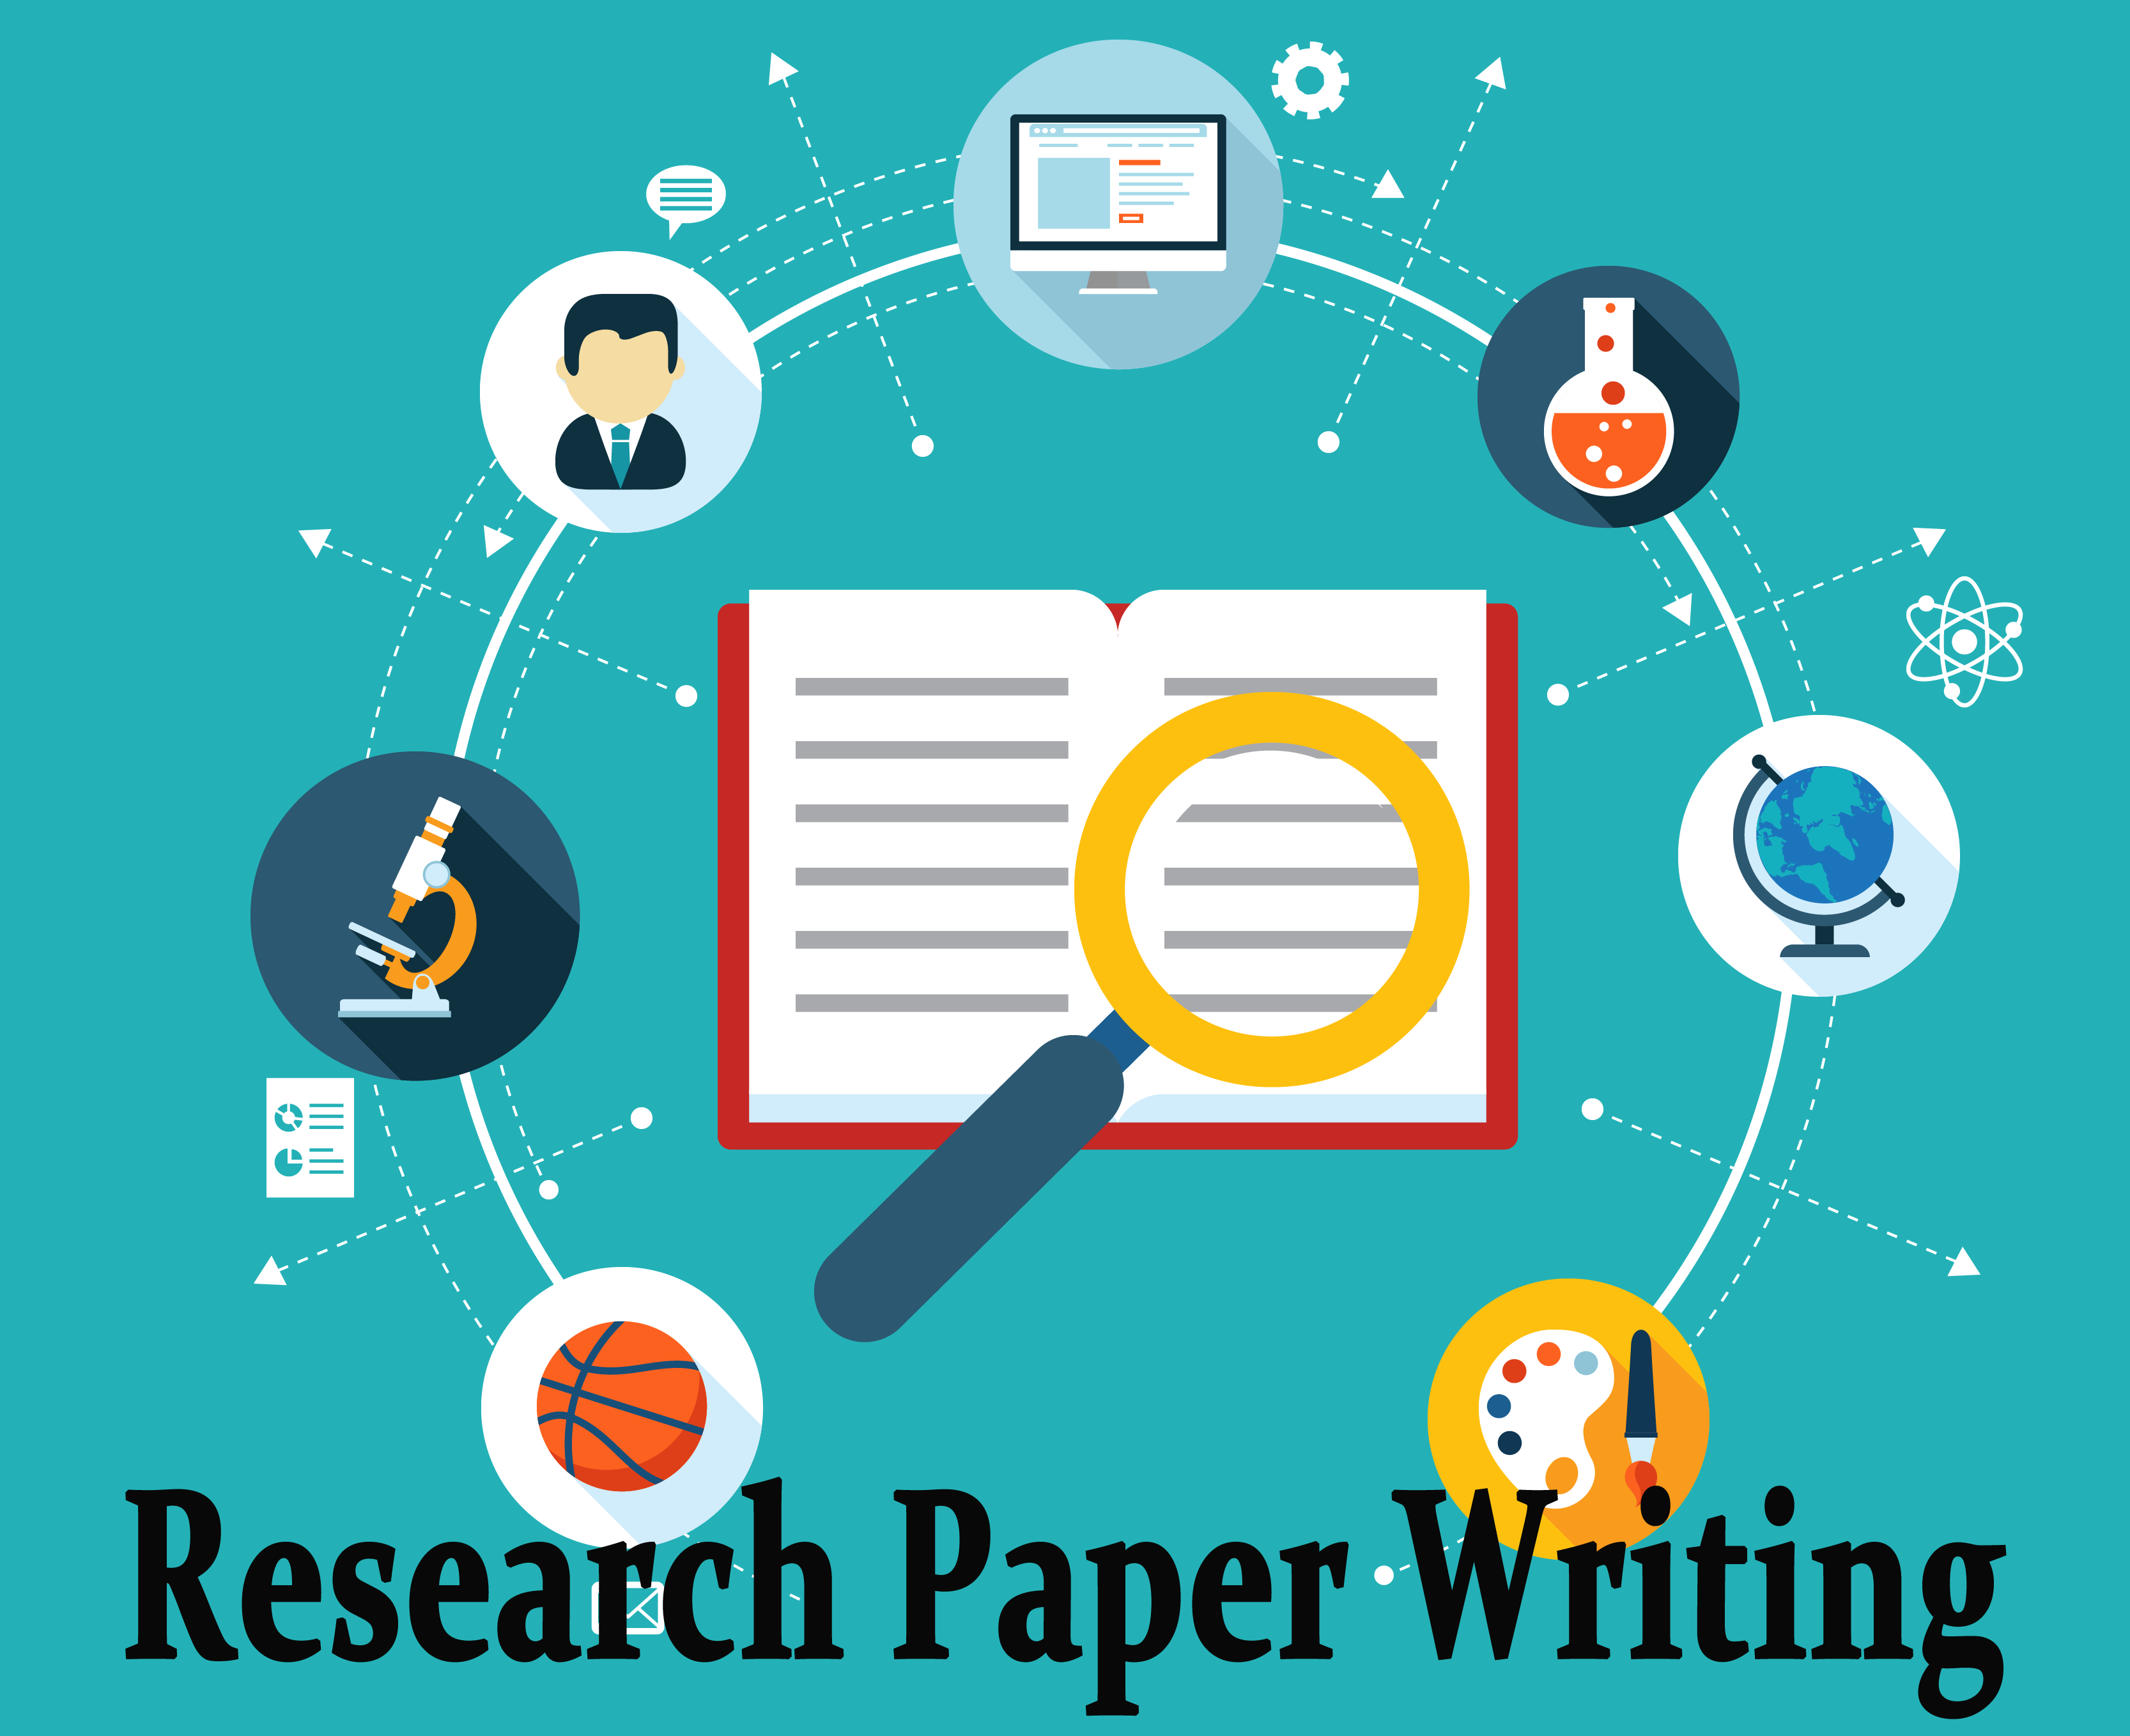 001 Help With Research Paper 503 Effective Writing Unique A Outline Me Write Free Full